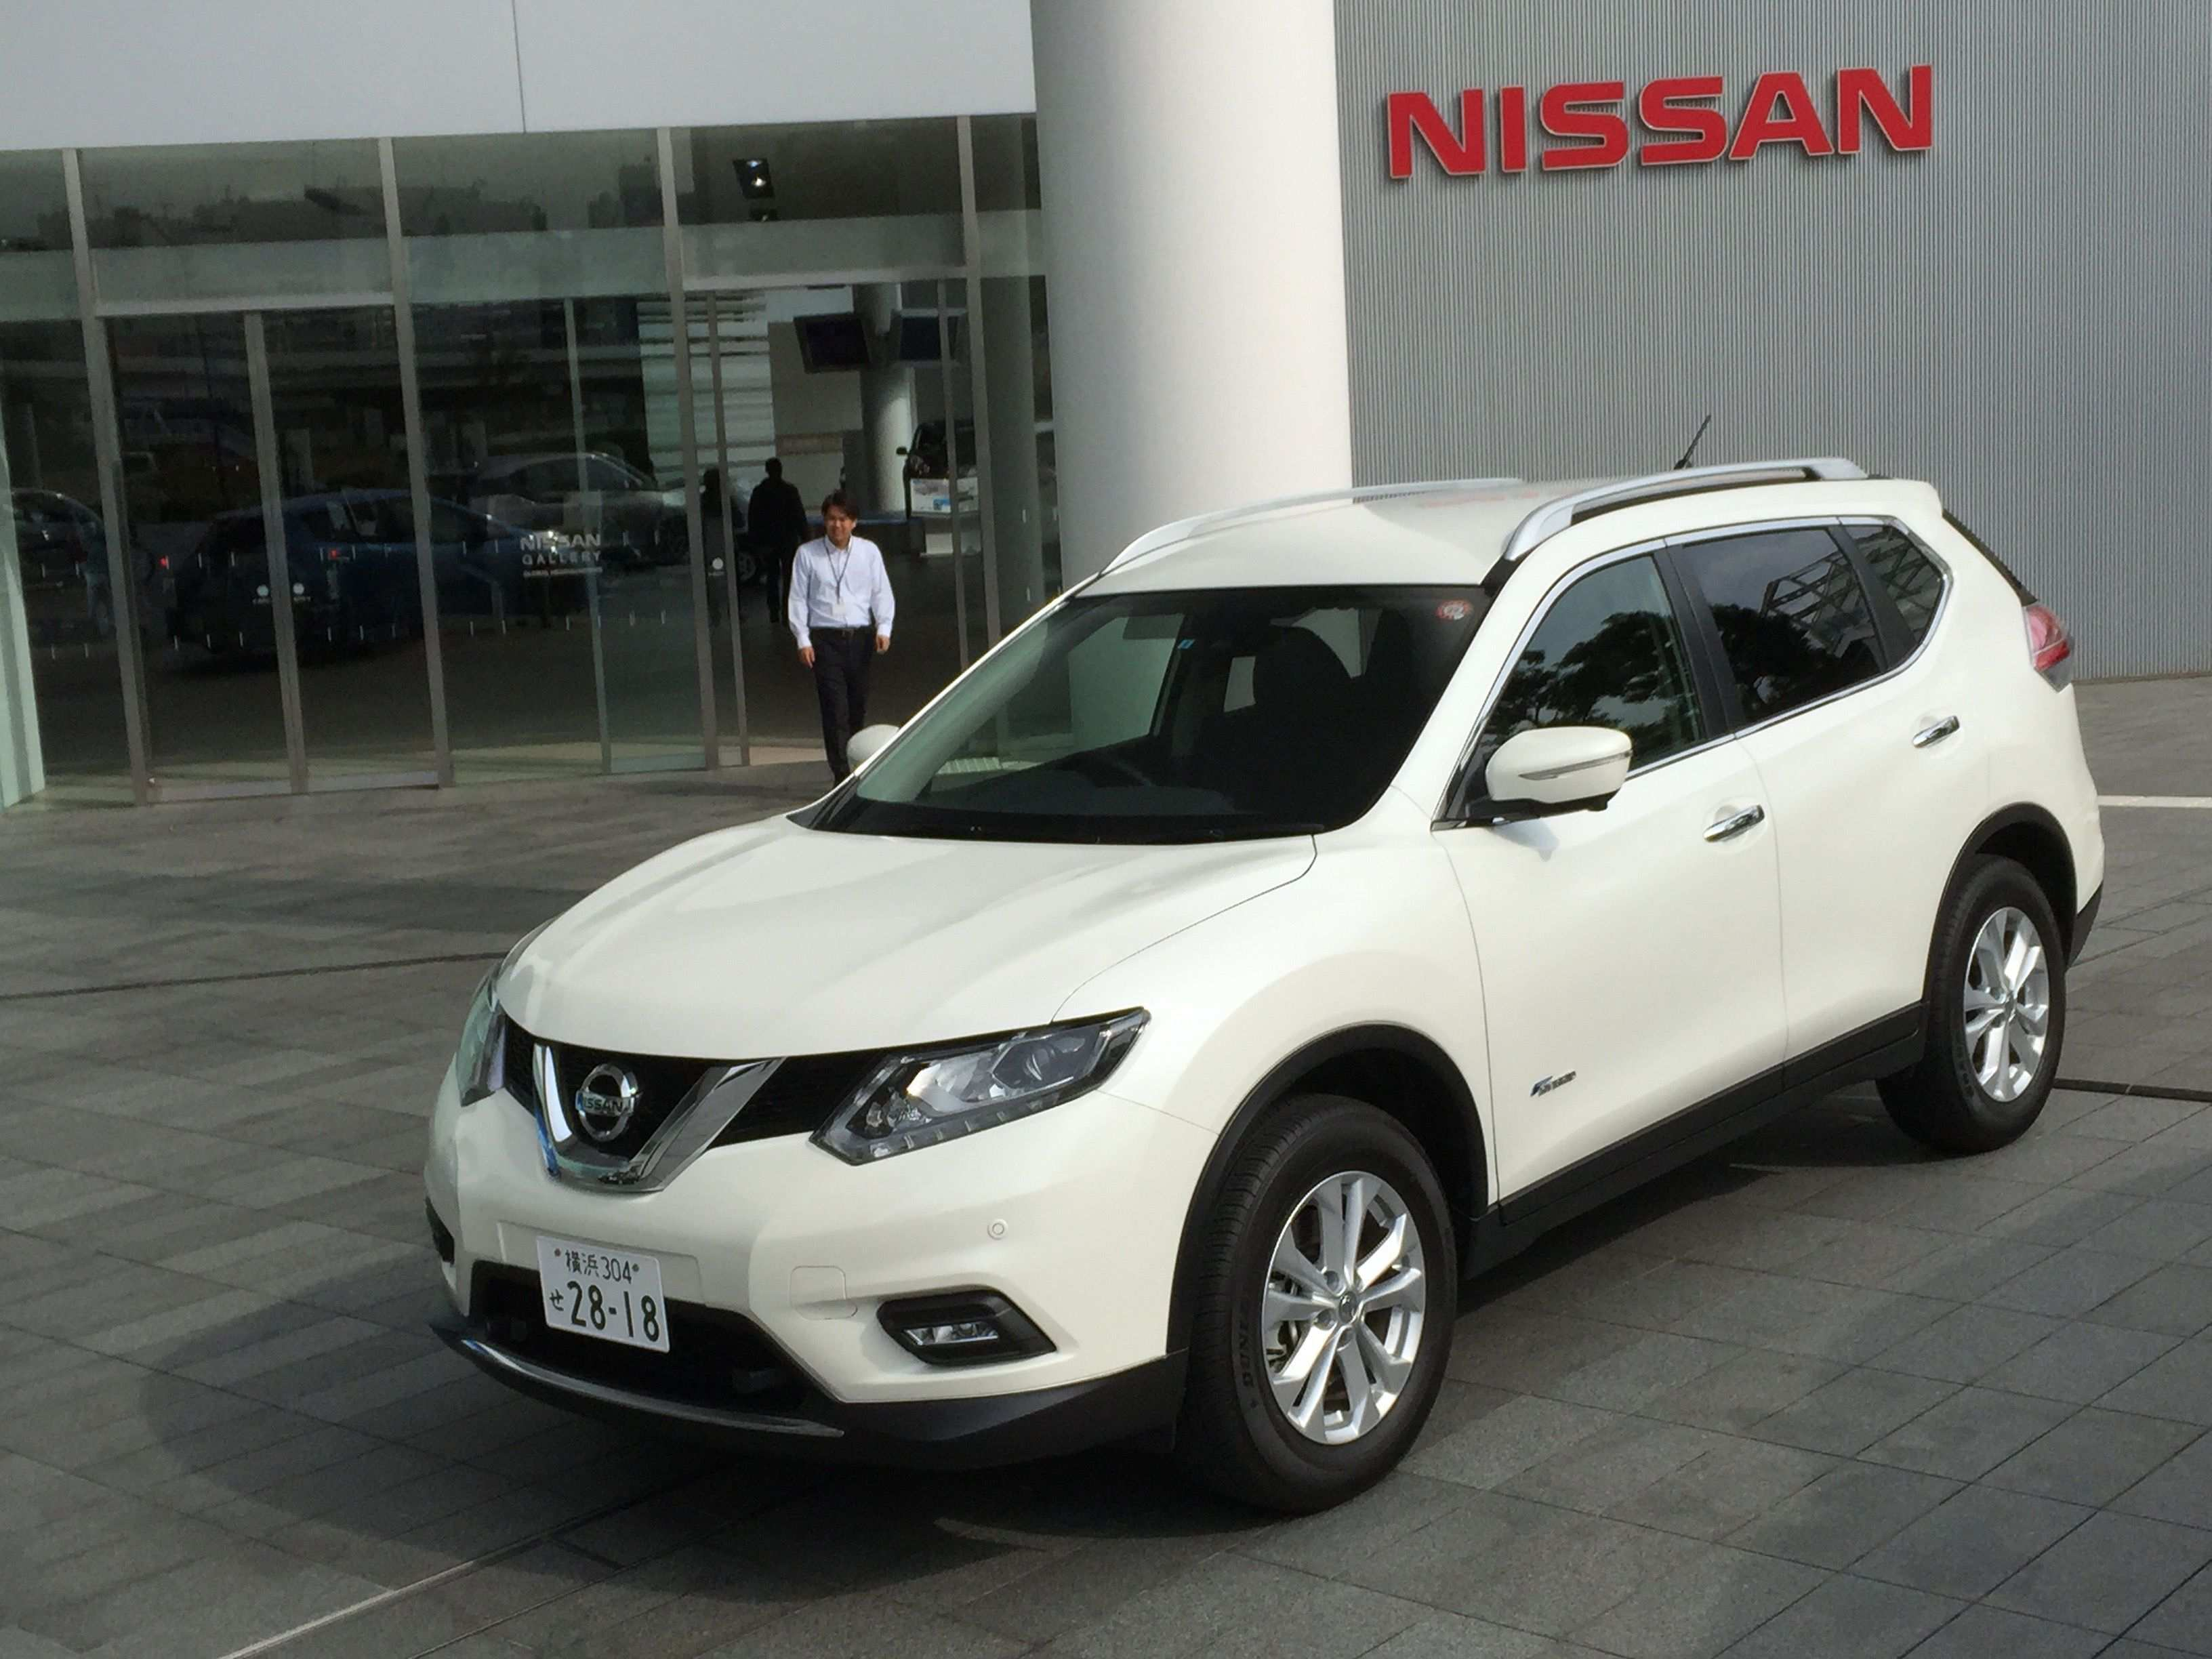 76 New Nissan Rogue 2020 Canada Interior for Nissan Rogue 2020 Canada